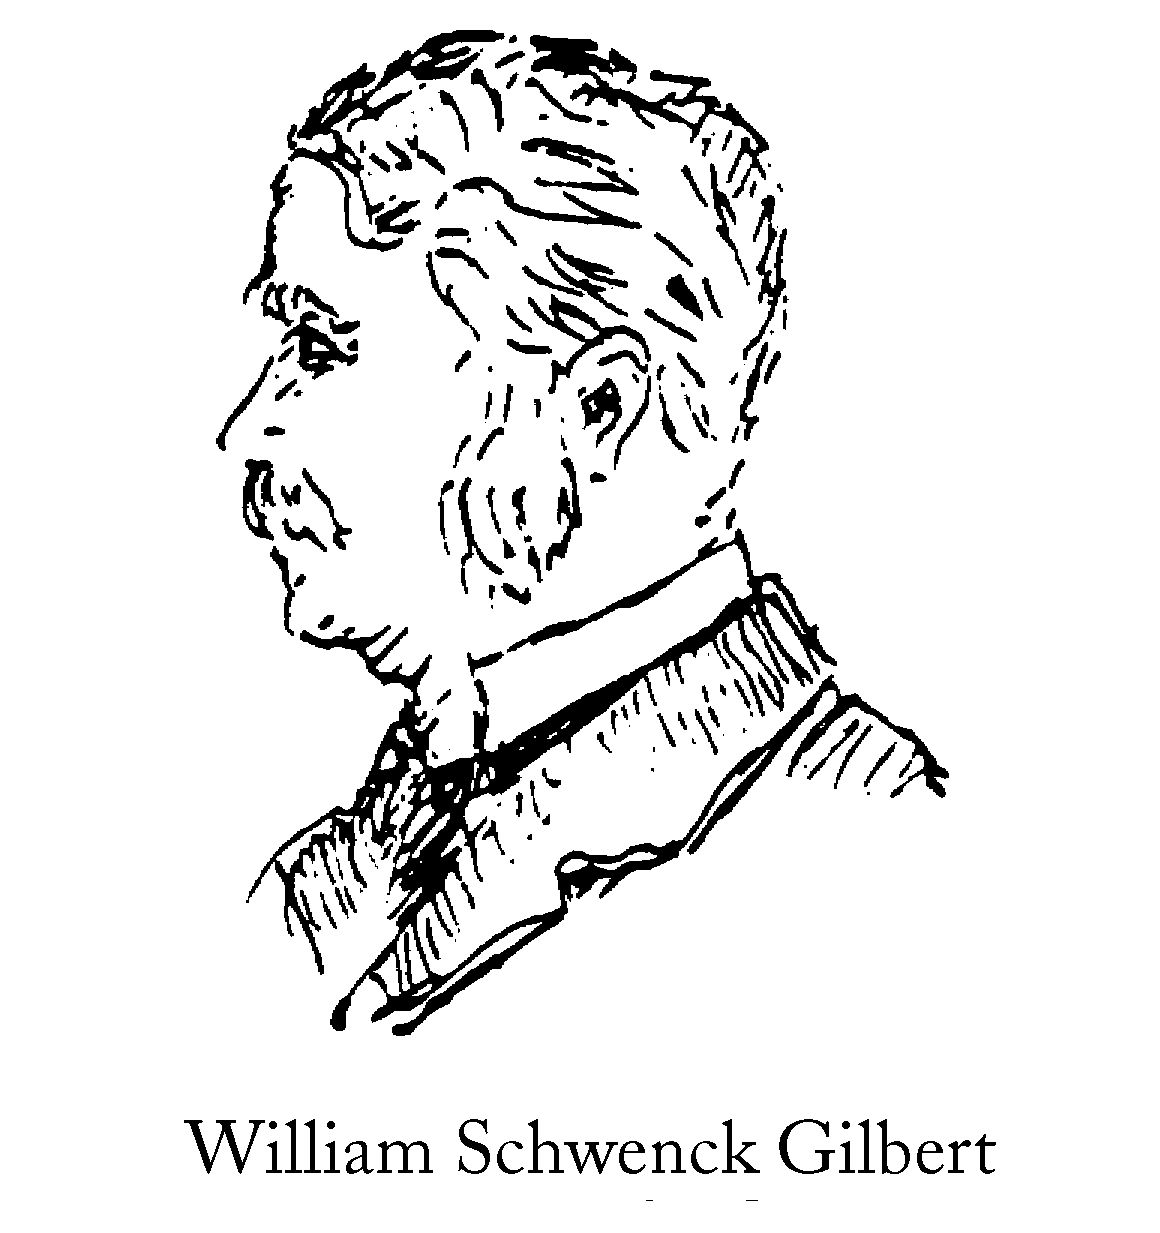 Sketch of Sir William Schwenck Gilbert, 1836 - 1911